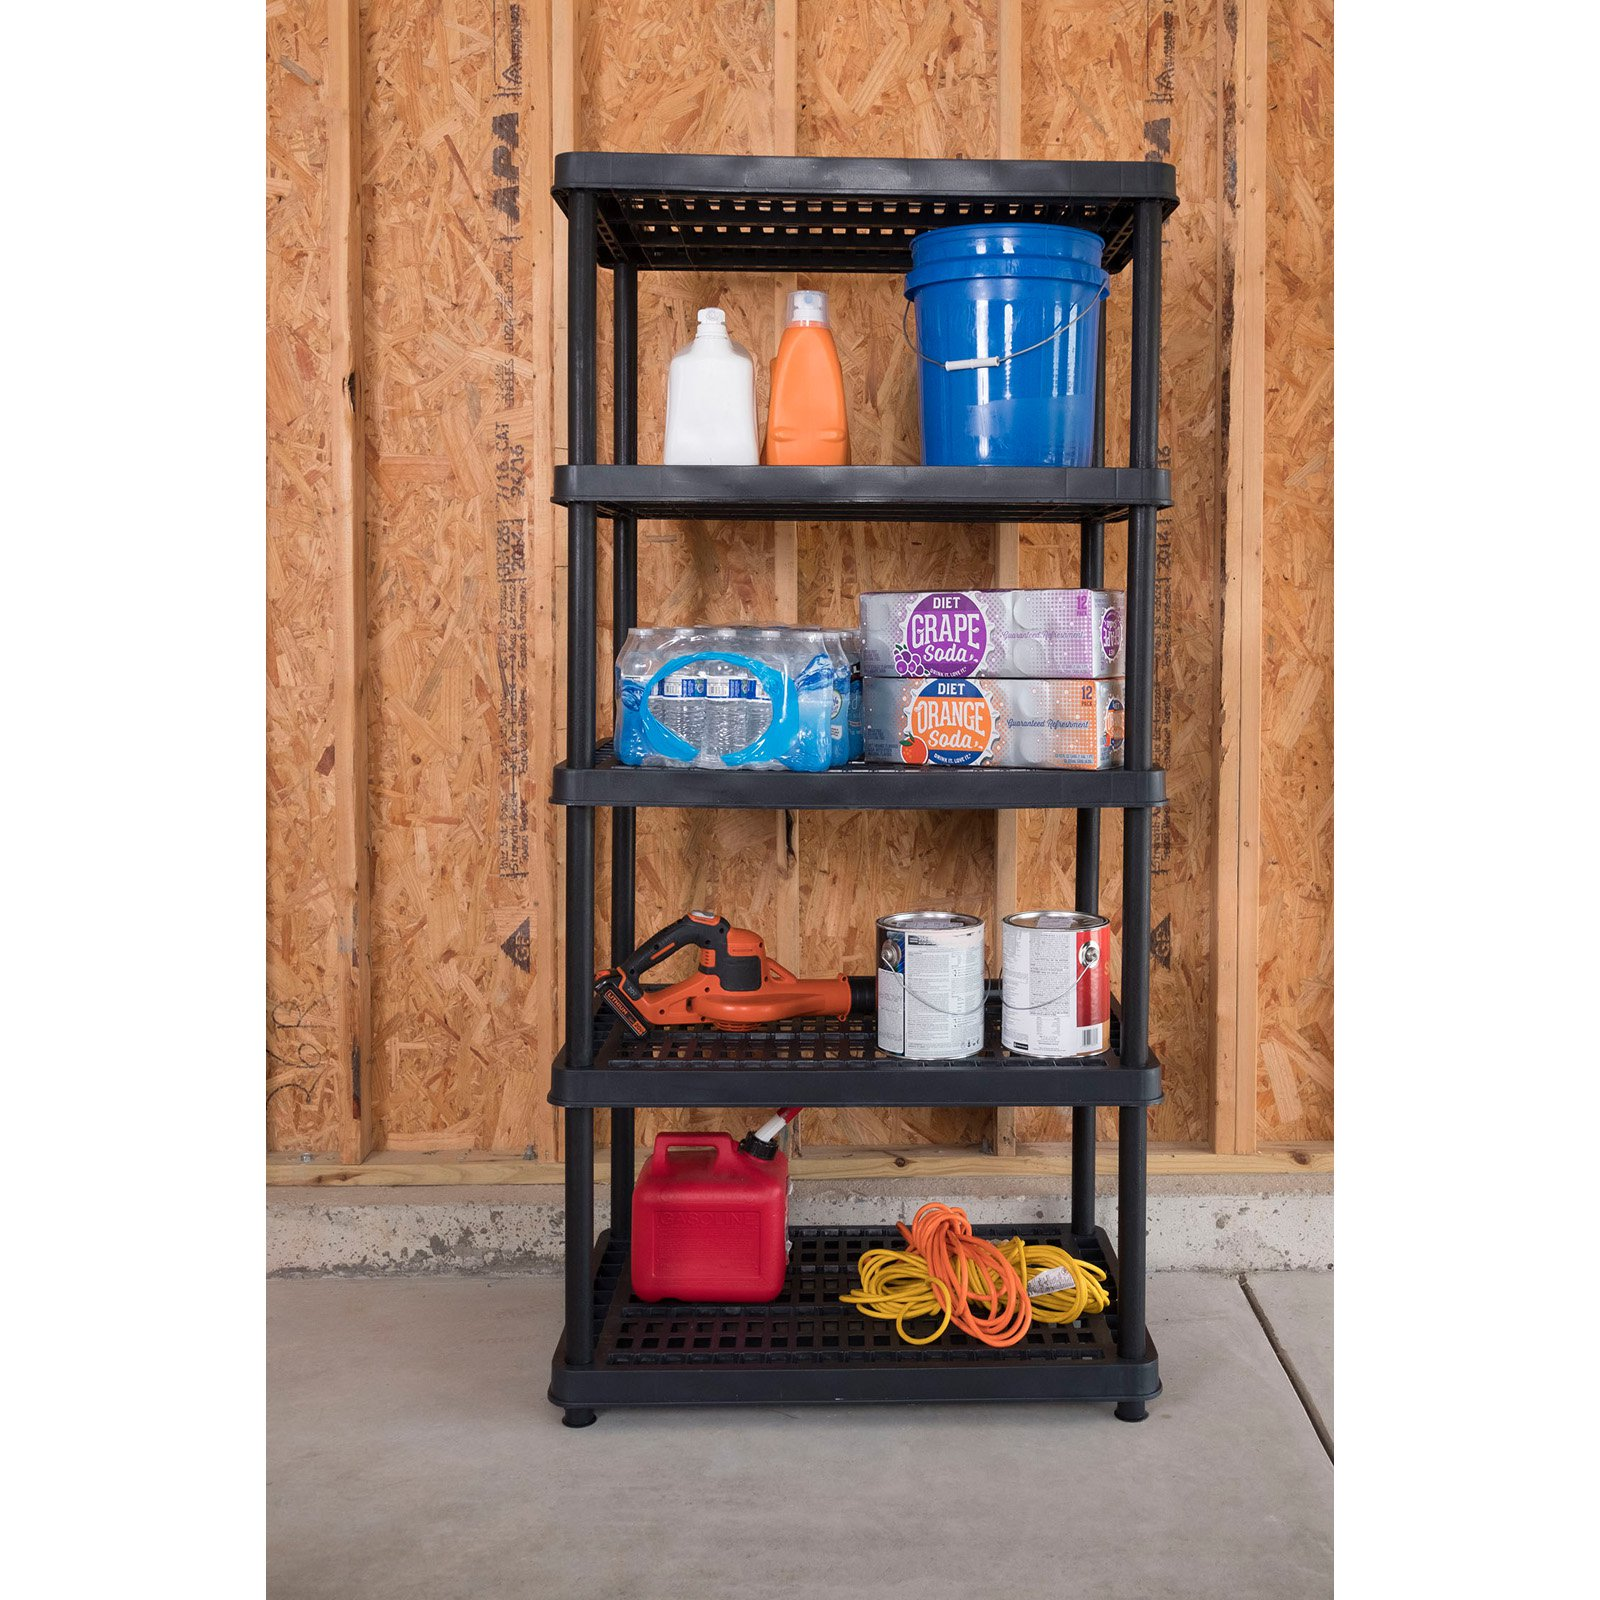 Keter 24-in. 5-Tier Ventilated Shelving Unit, Resin Storage Shelf, Black